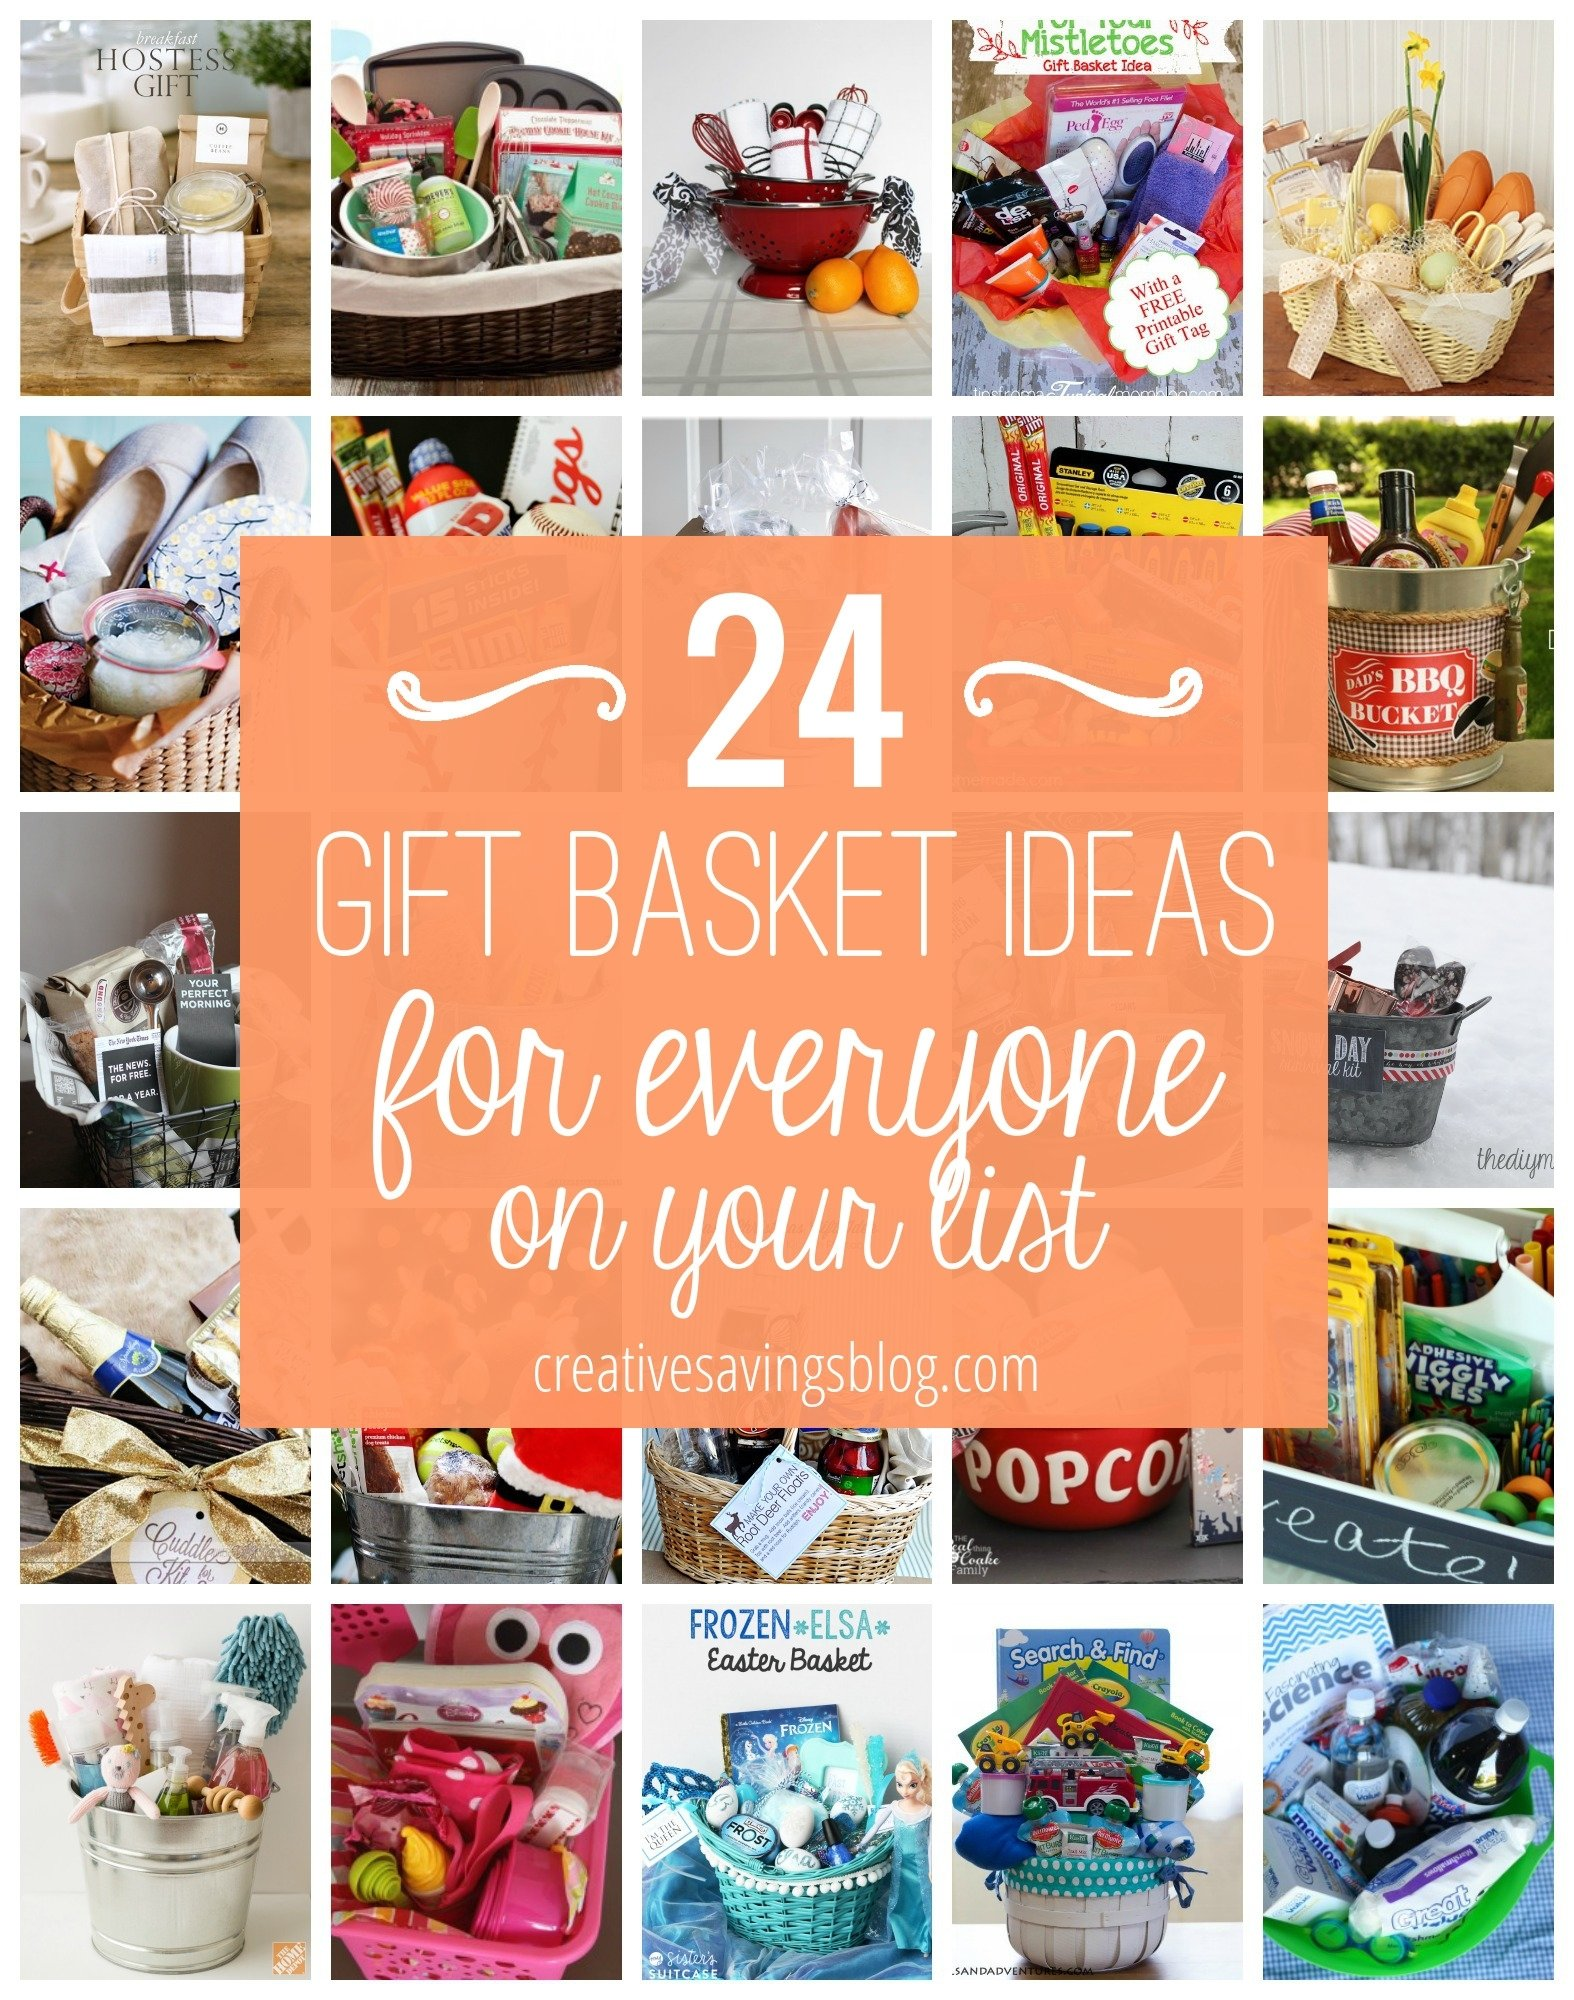 10 Fashionable Ideas For A Gift Basket diy gift basket ideas for everyone on your list 2020